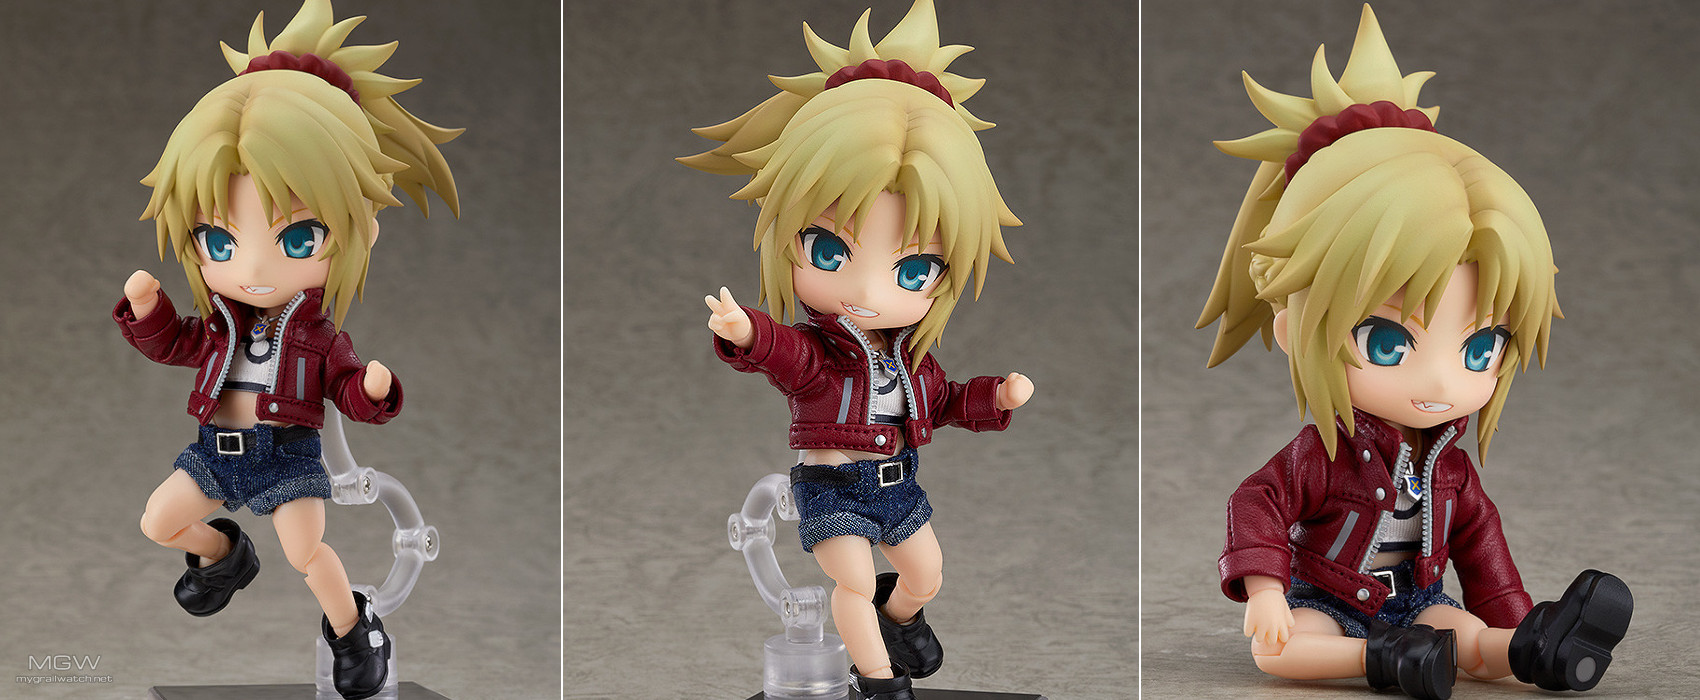 Nendoroid Doll Saber of Red Casual Ver. by Good Smile Company from Fate Apocrypha